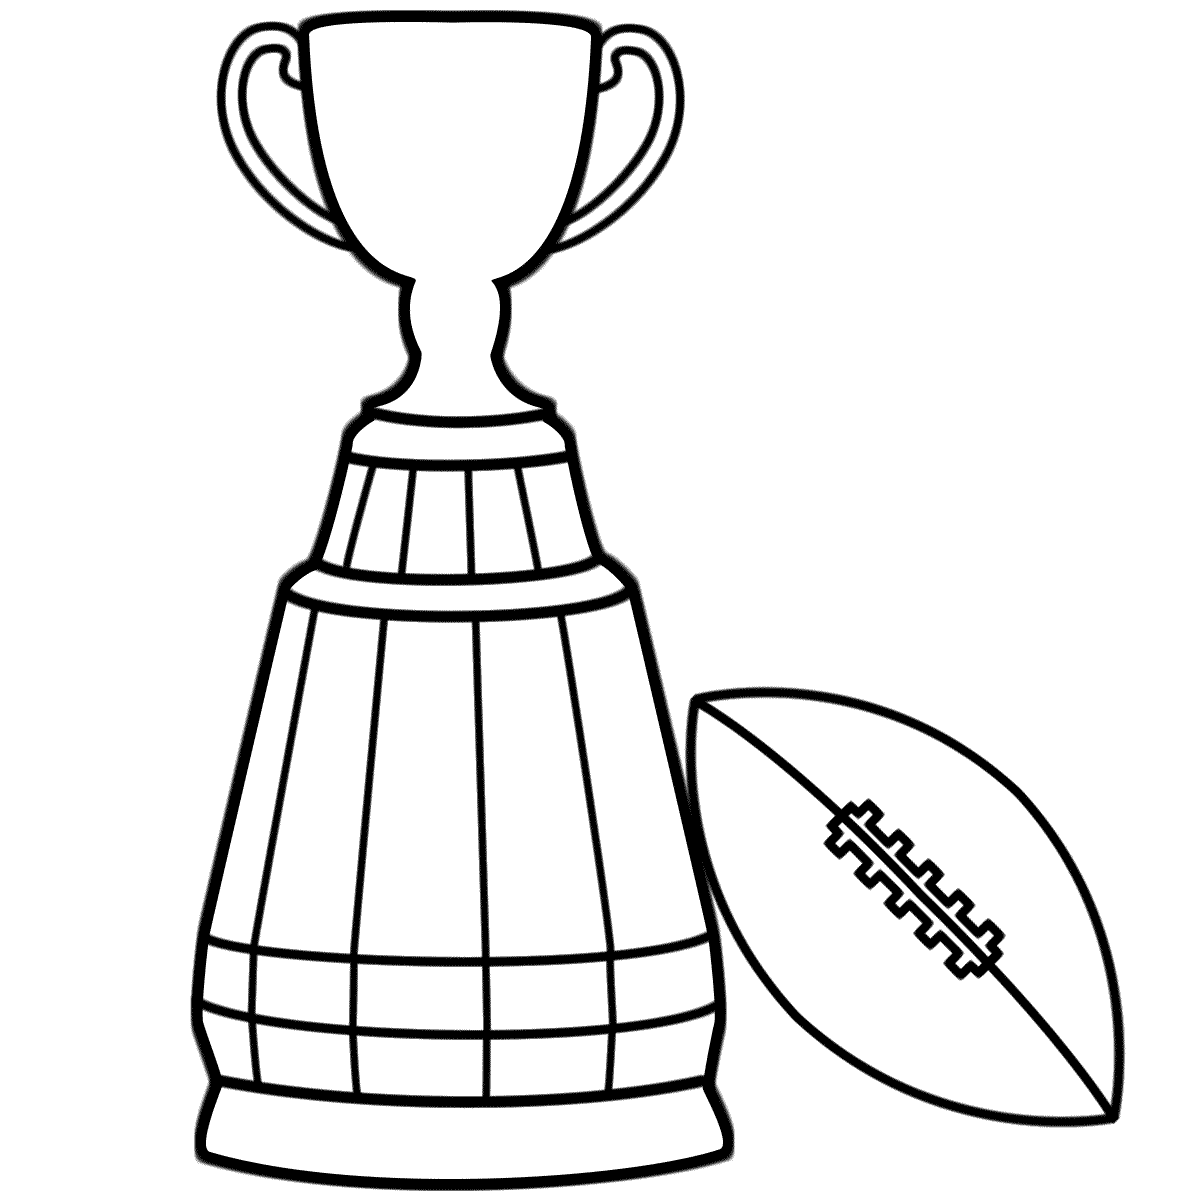 Football Trophy Template